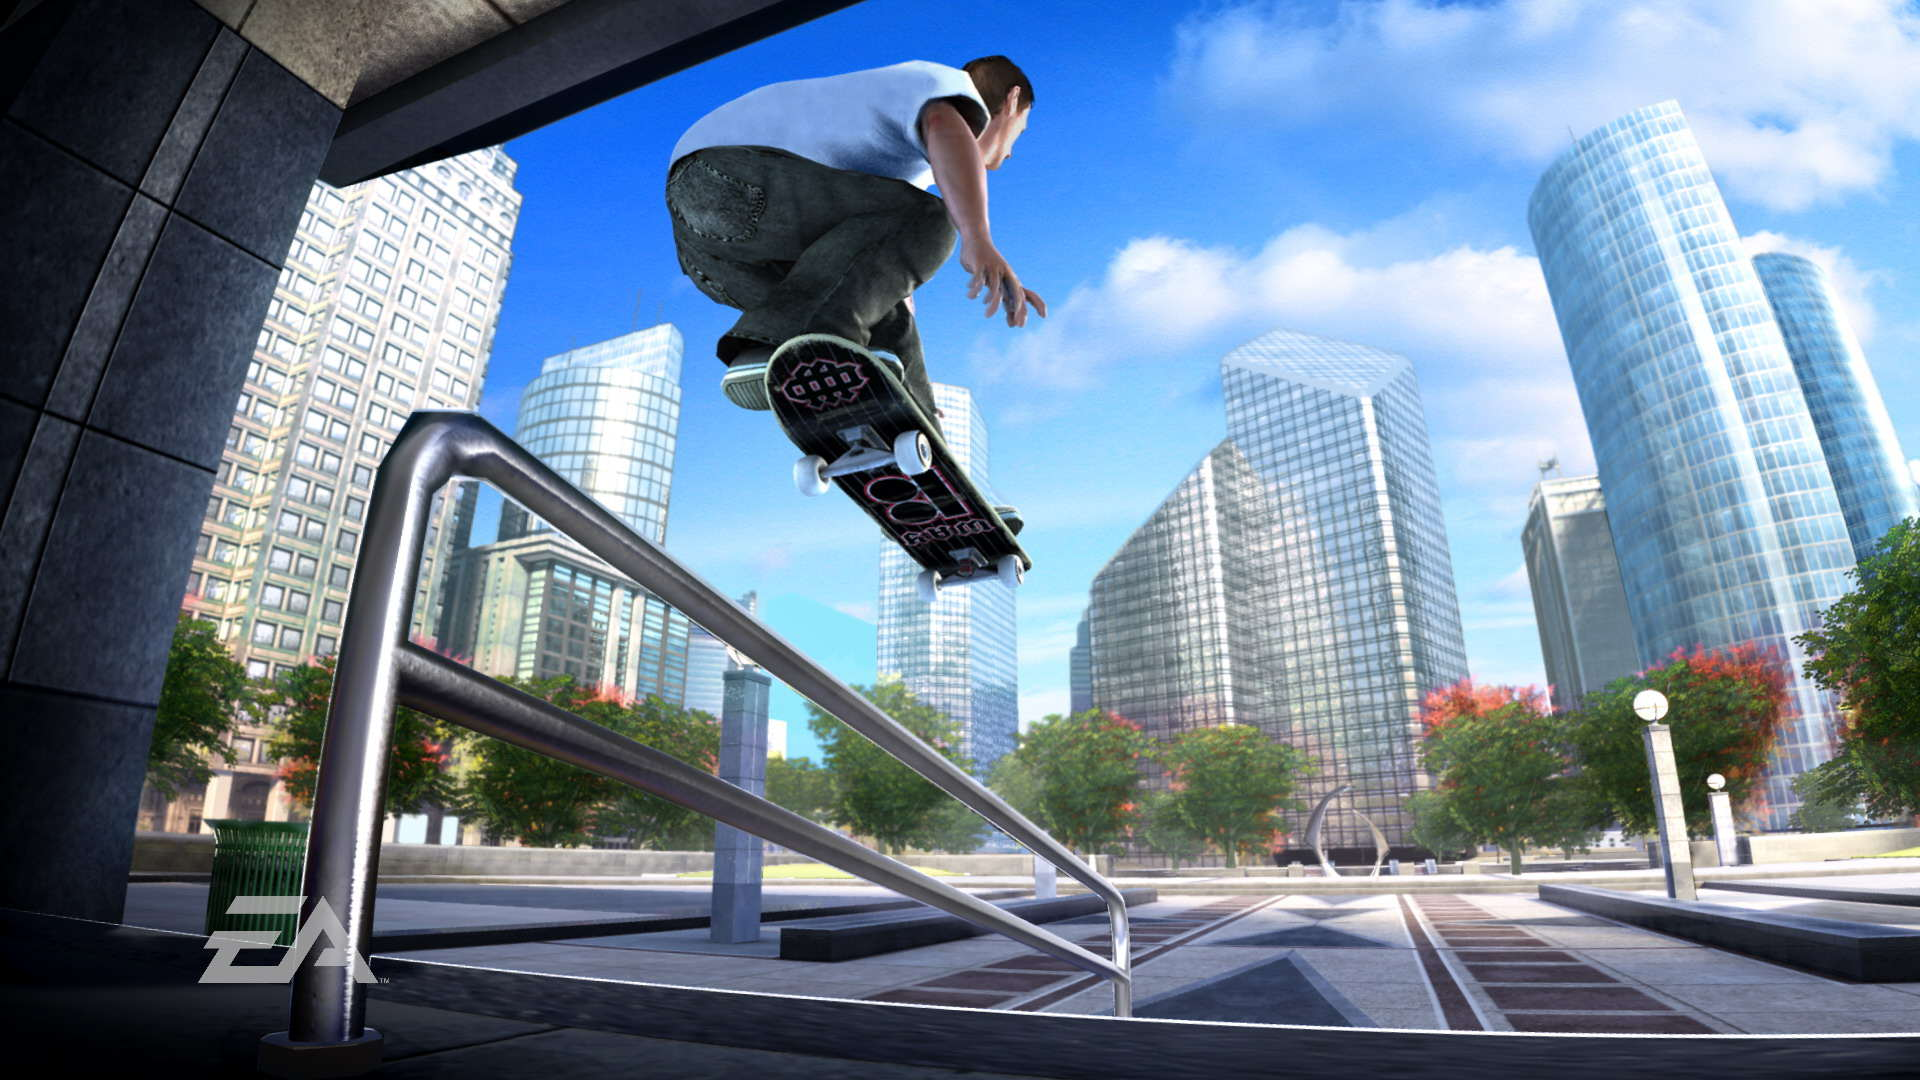 1322072 Skate 4 Could Be A Reality As Leaked Image Surfaces